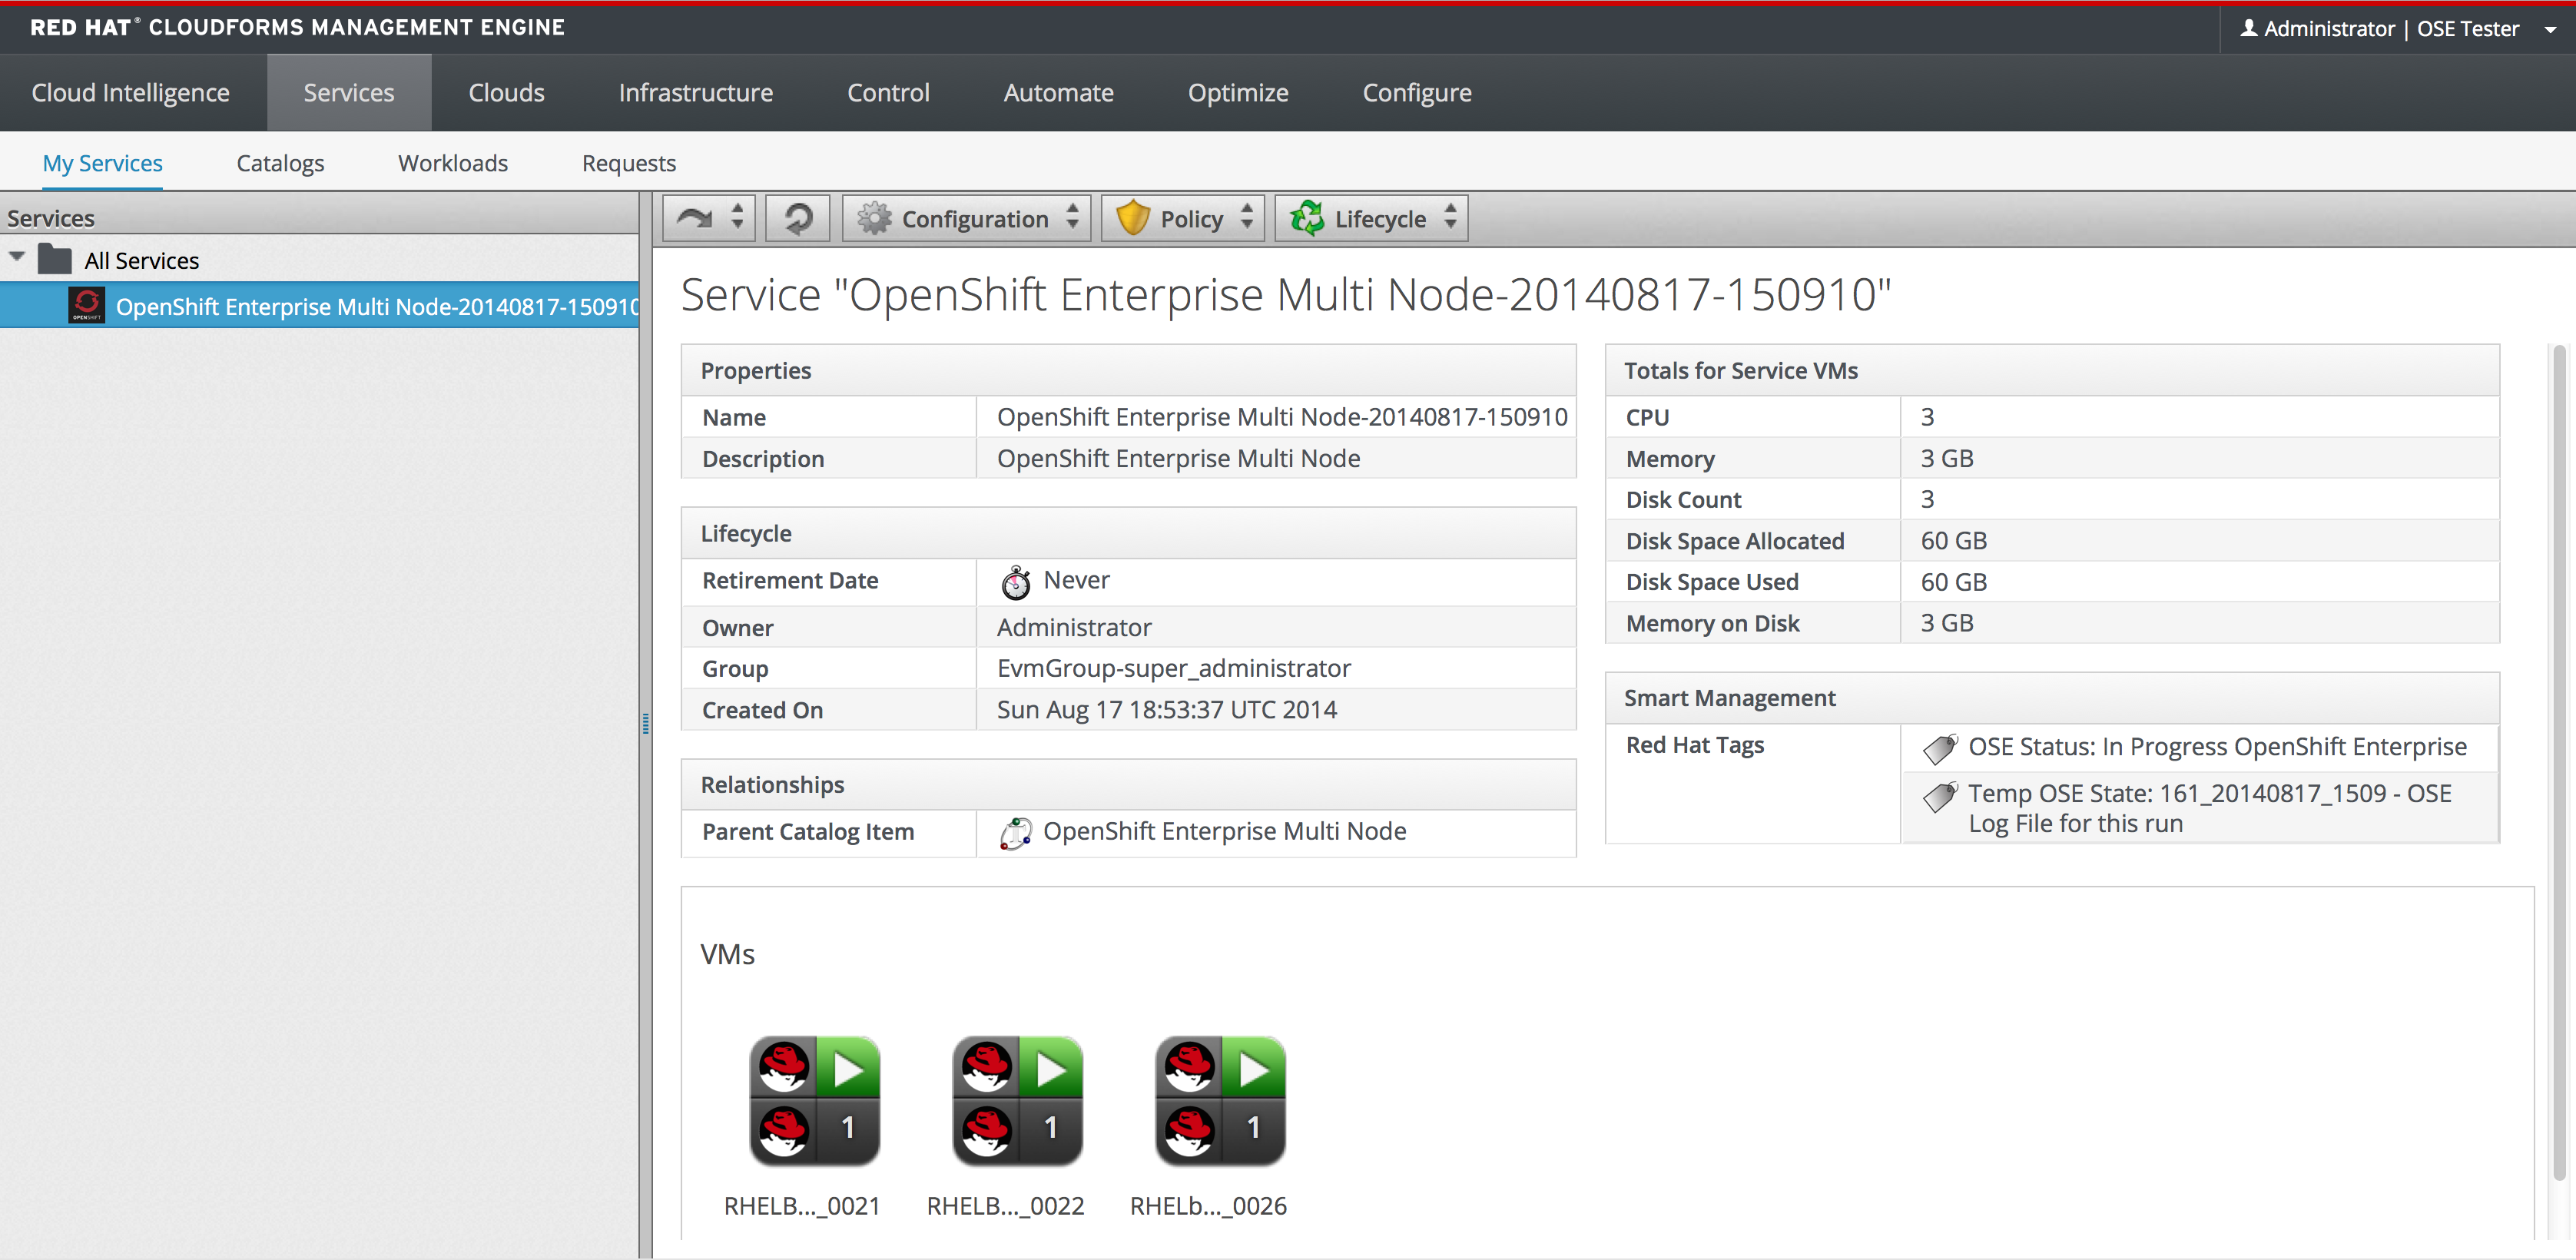 Red Hat CloudForms 3.1 Management Engine 5.3 O penshift Ent erprise Deployment G uide The install process creates tags dynamically and assigns them to various items.